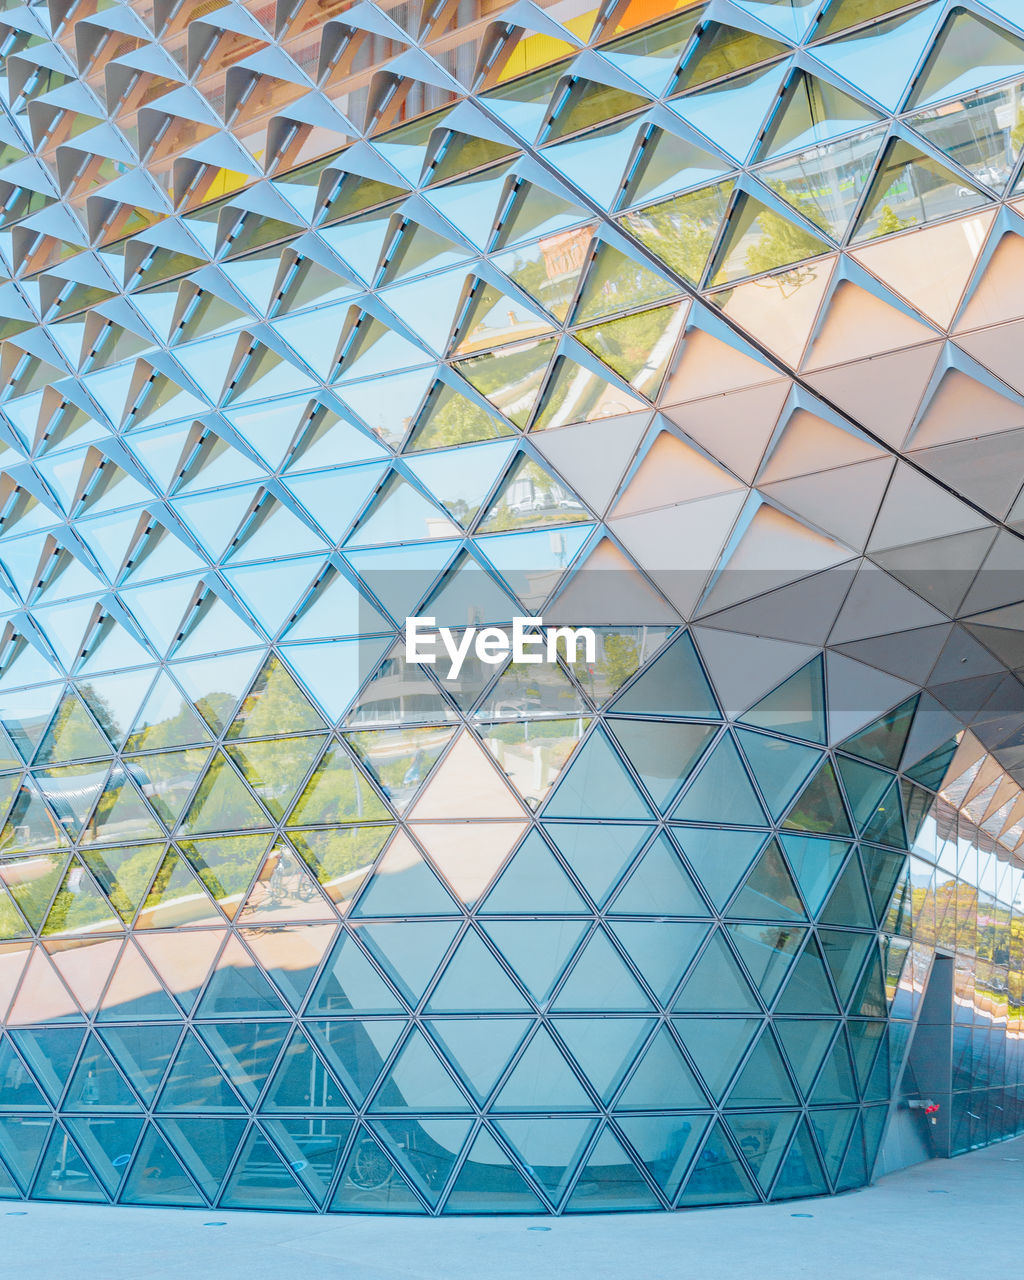 built structure, architecture, pattern, building exterior, modern, no people, low angle view, design, glass - material, day, full frame, office, geometric shape, shape, backgrounds, building, architectural feature, ceiling, outdoors, office building exterior, glass